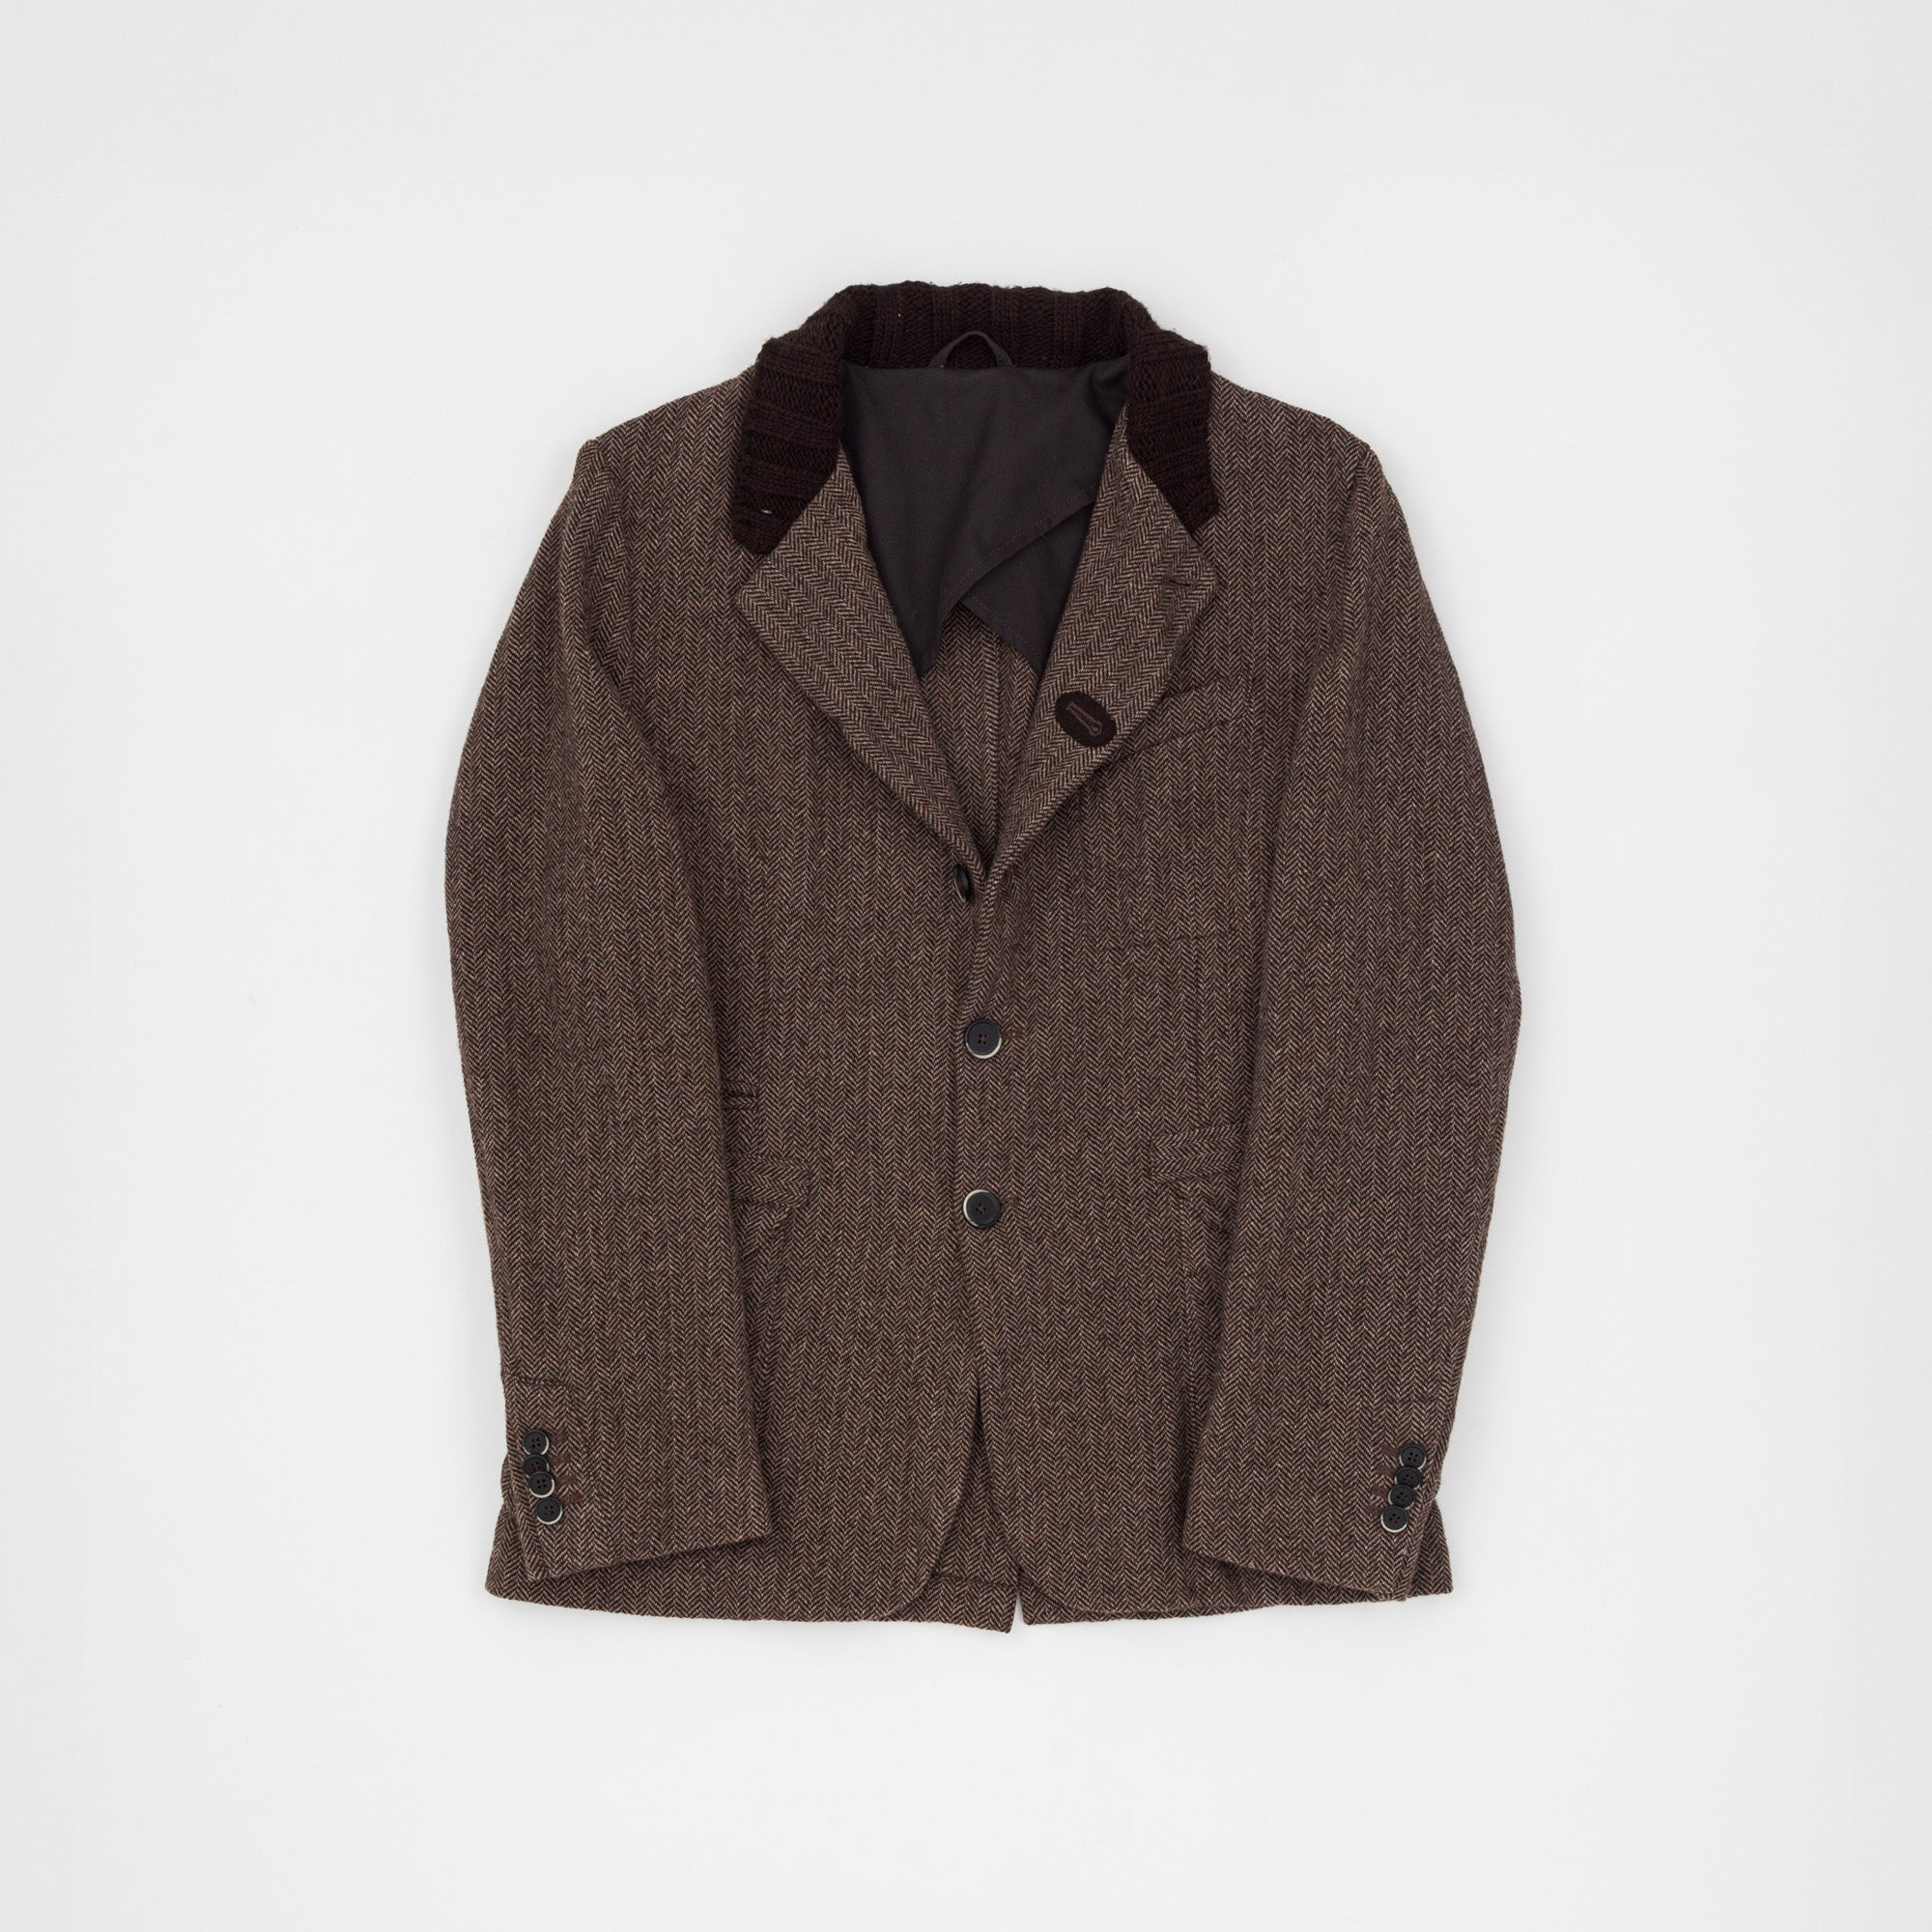 Barena Venezia Tweed Jacket